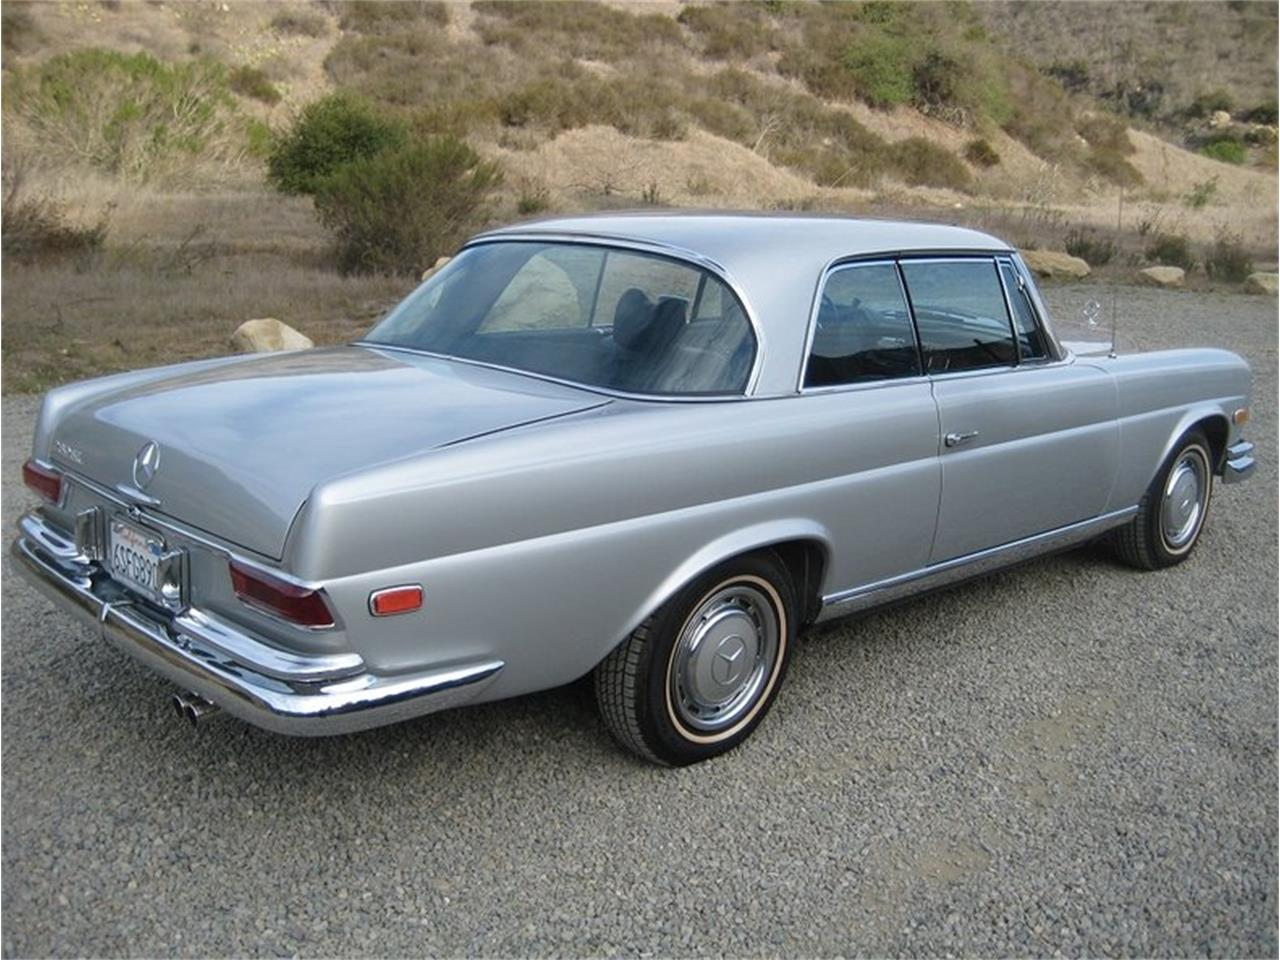 Large Picture of '69 Mercedes-Benz 280SE located in California - $109,000.00 Offered by Laguna Classic Cars - MGKL